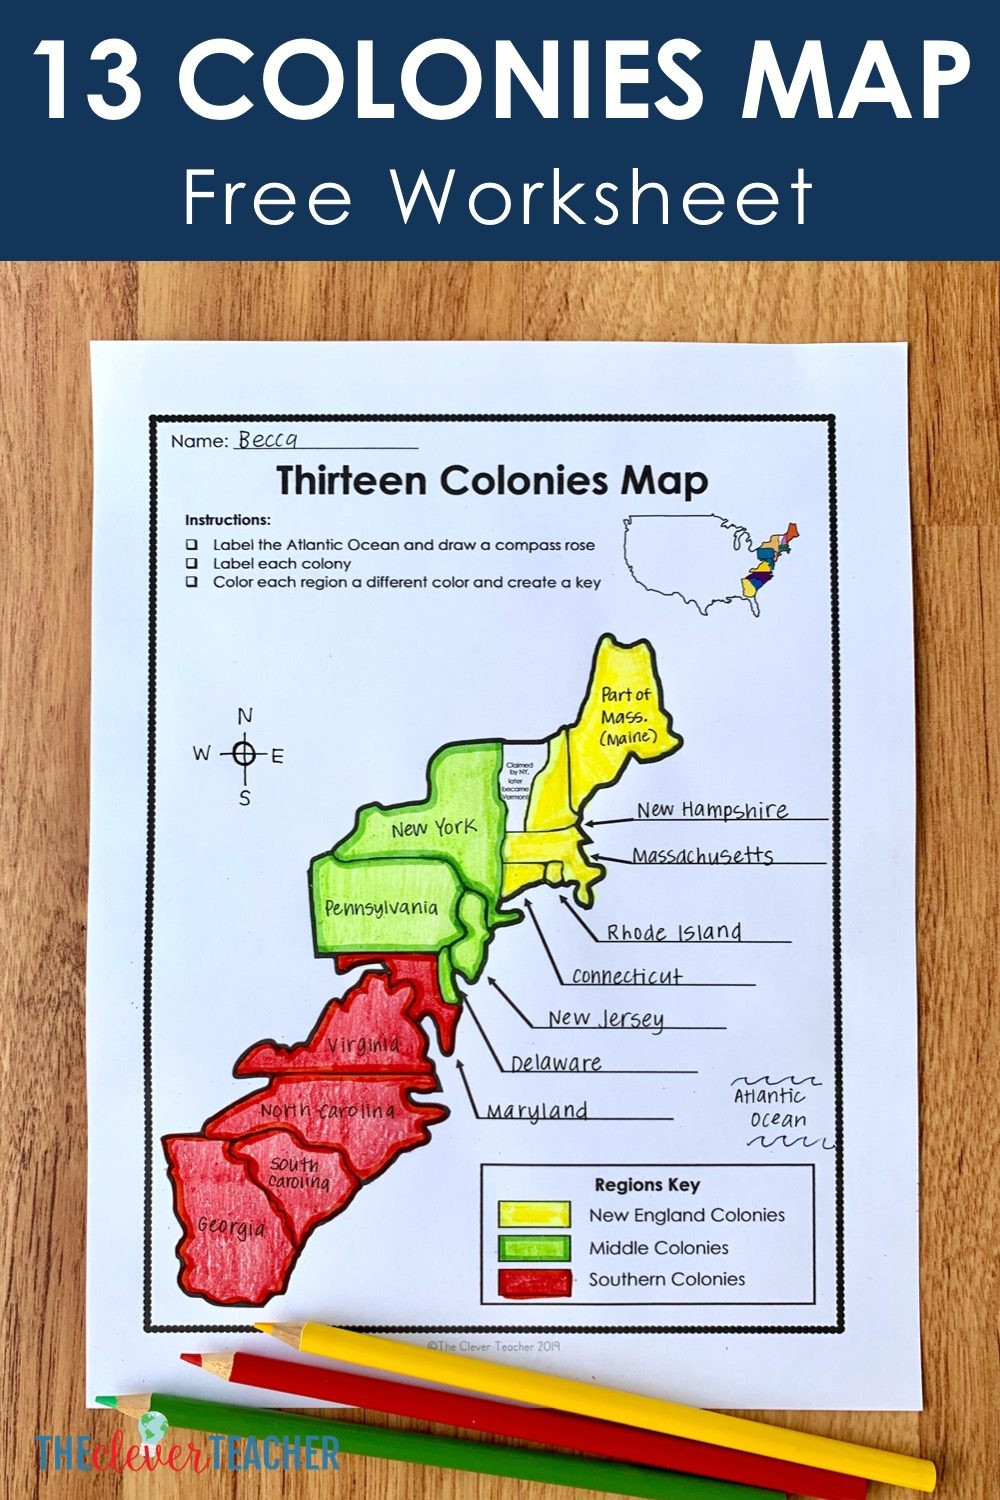 13 Colonies Free Printable Worksheets 13 Colonies Free Map Worksheet and Lesson for Students